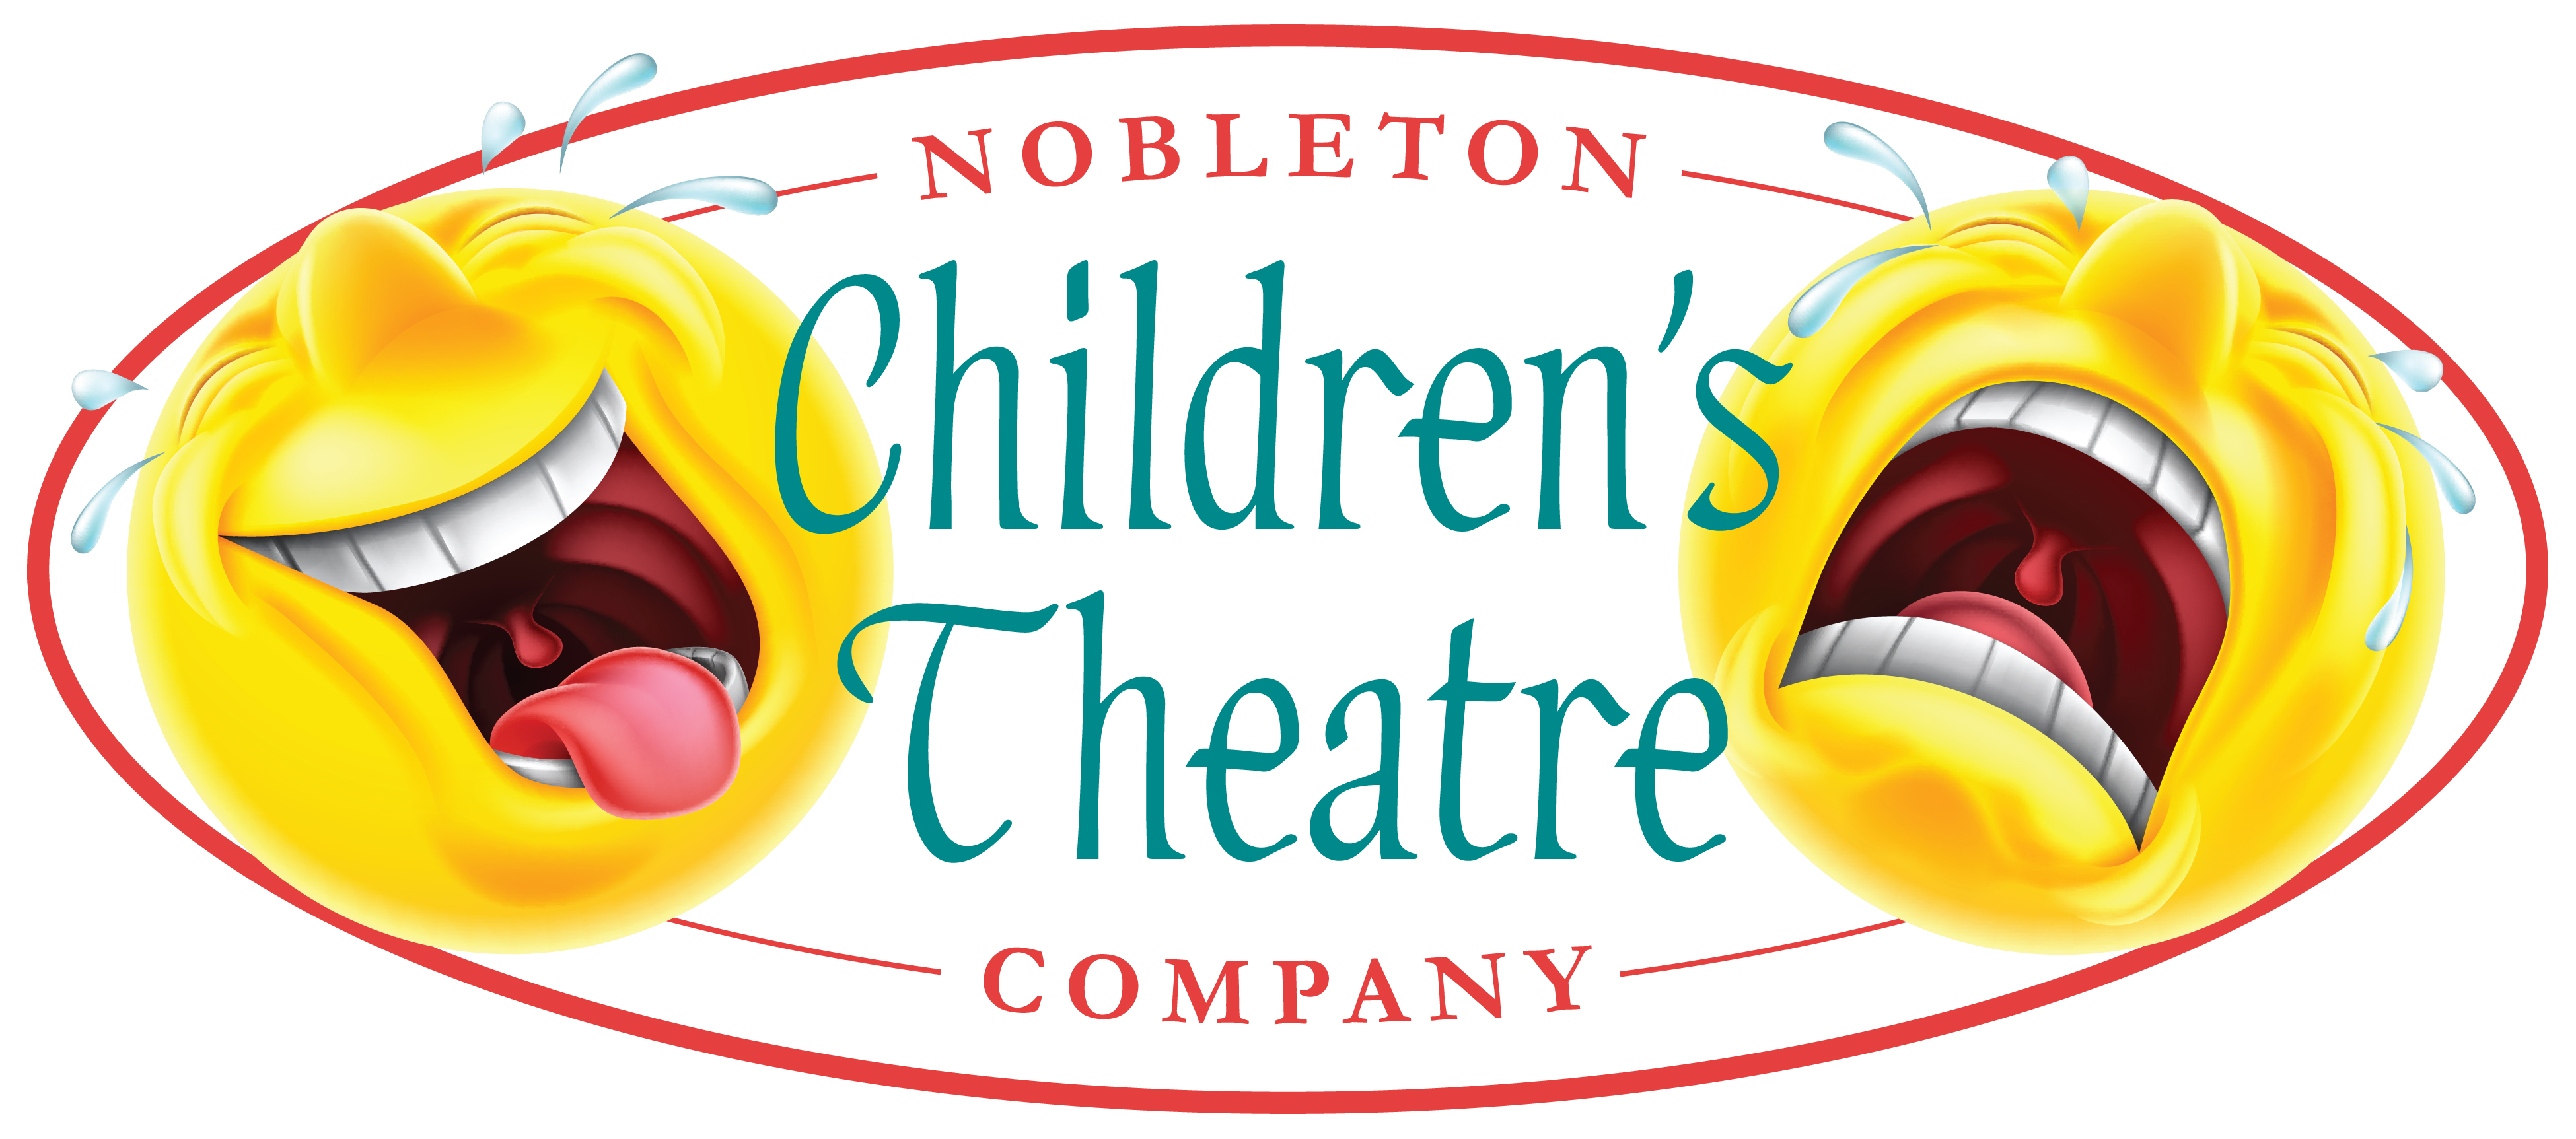 Nobleton Children's Theatre Co.